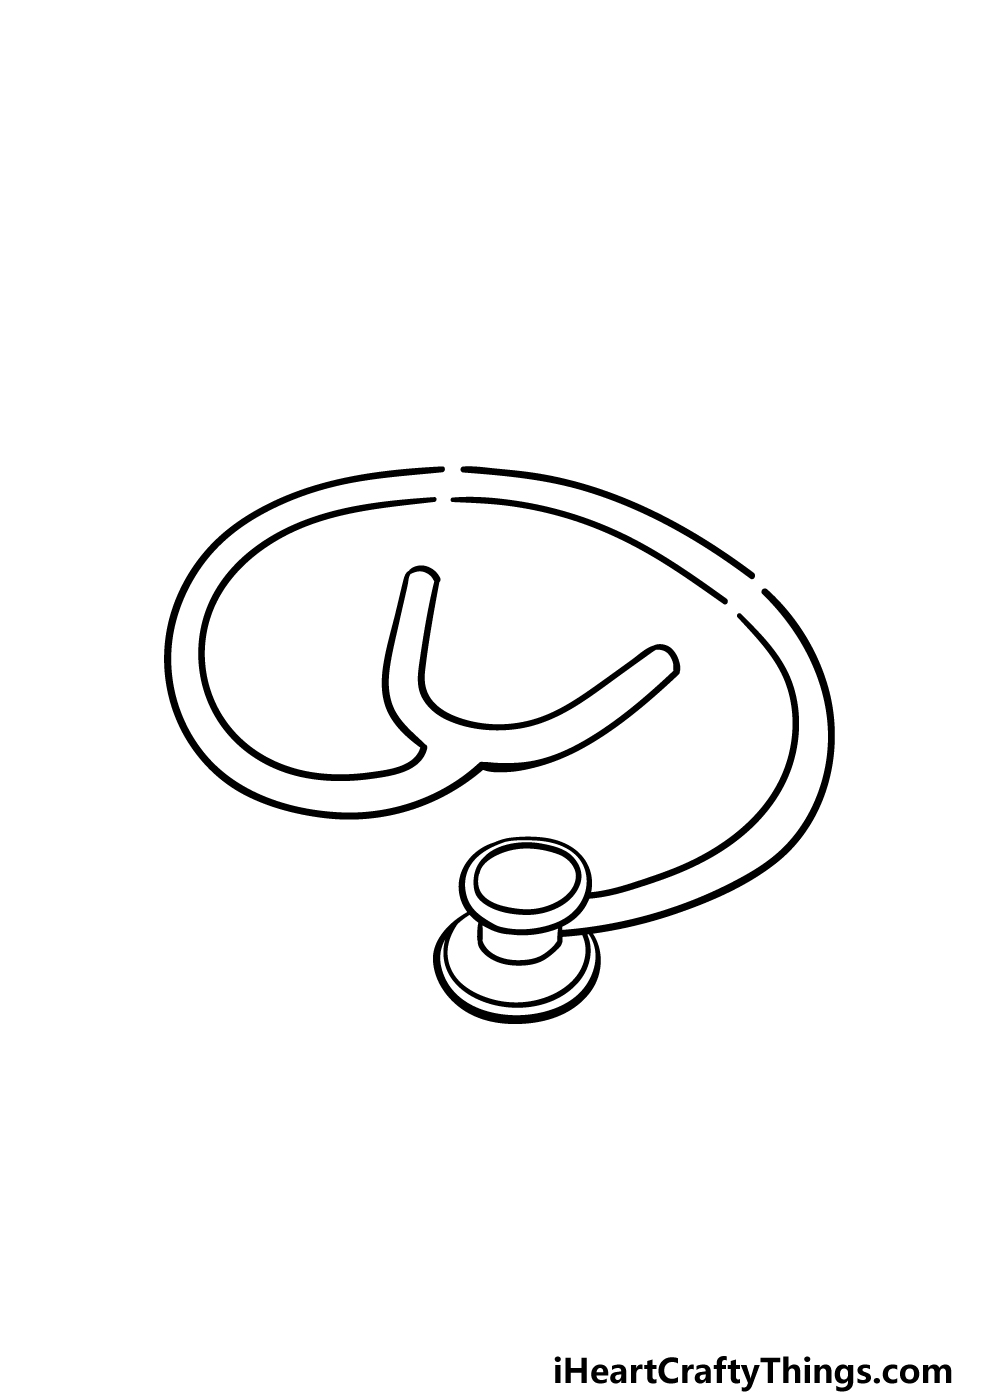 drawing stethoscope step 3